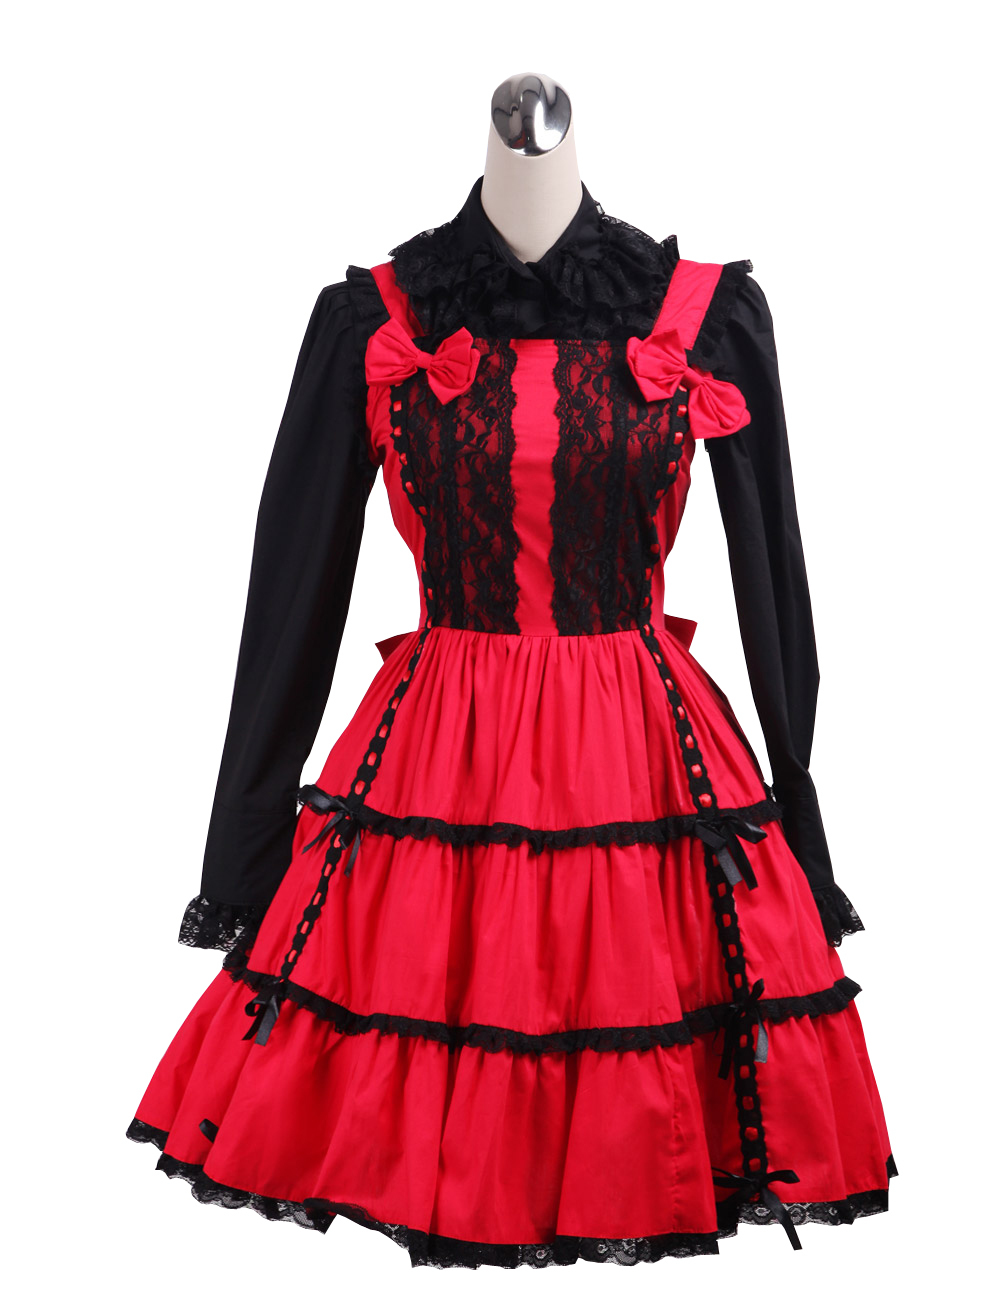 Primary image for ZeroMart Red and Black Bow Lace Ruffles Classic Gothic Lolita Dress